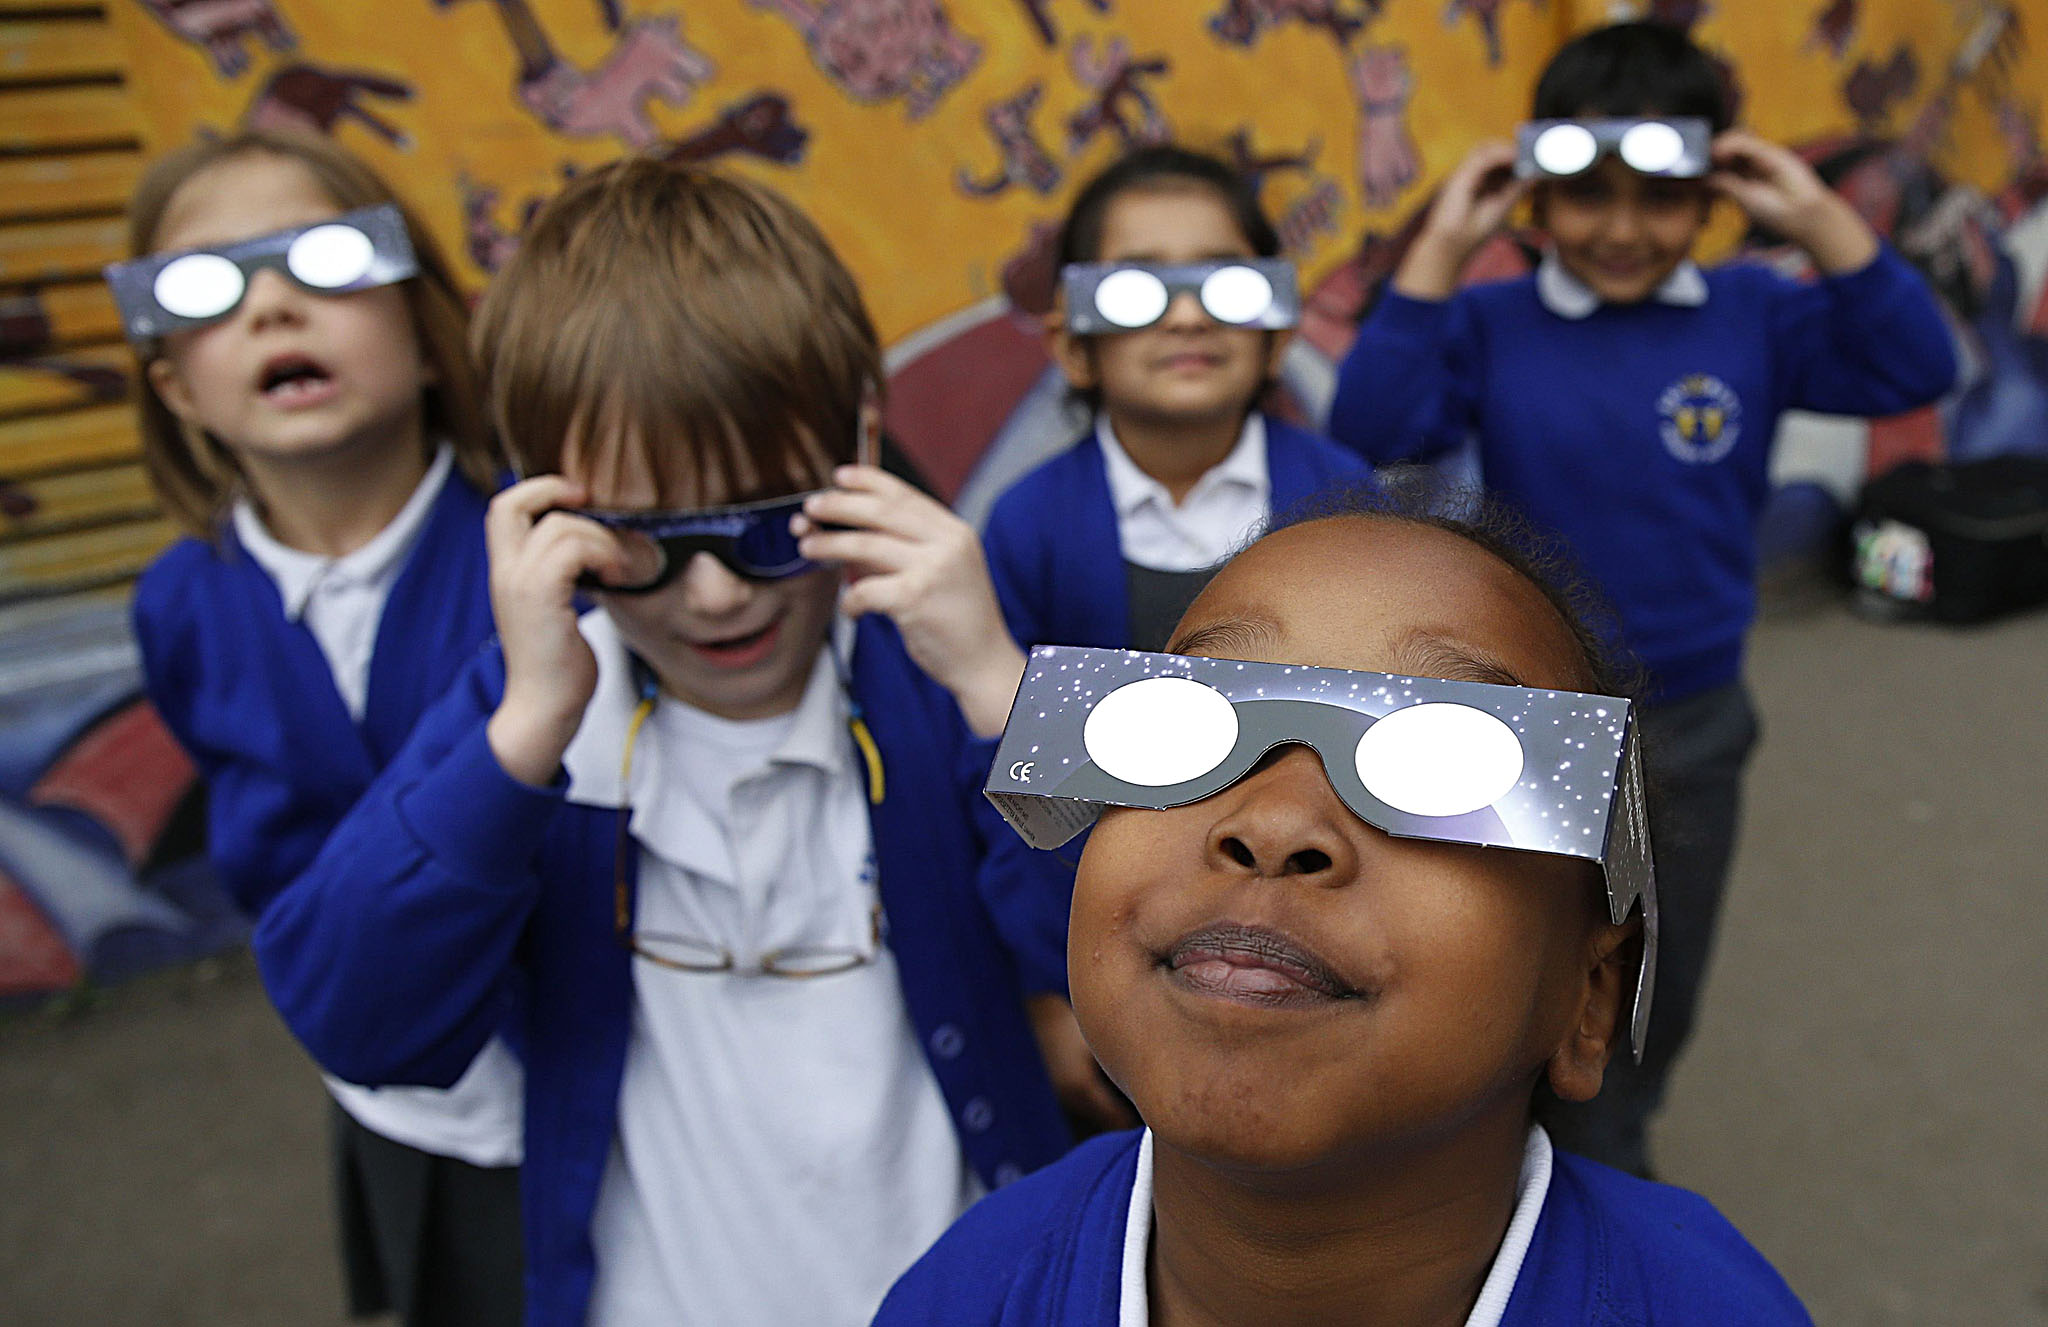 Children at a school wear solar viewing glasses as they try to see a partial solar eclipse in London...Children at a school wear solar viewing glasses as they try to see a partial solar eclipse in London March 20, 2015. A solar eclipse swept across the Atlantic Ocean on Friday with the moon blocking out the sun for a few thousand sky gazers on remote islands with millions more in Europe, Africa and Asia getting a partial celestial show. REUTERS/Suzanne Plunkett